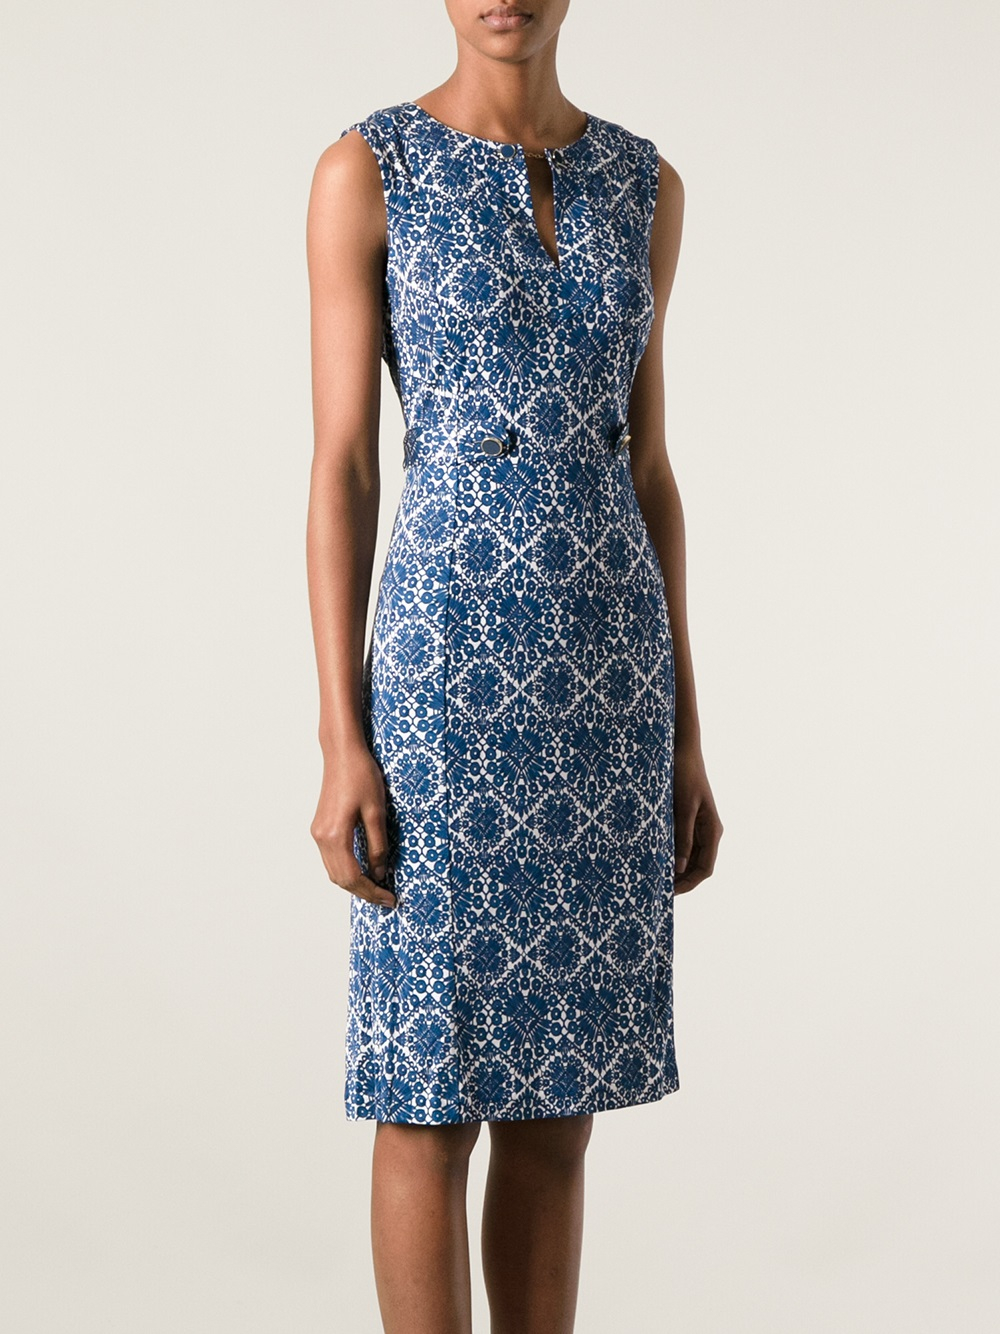 Lyst tory burch printed dress in blue for Tory burch fashion island